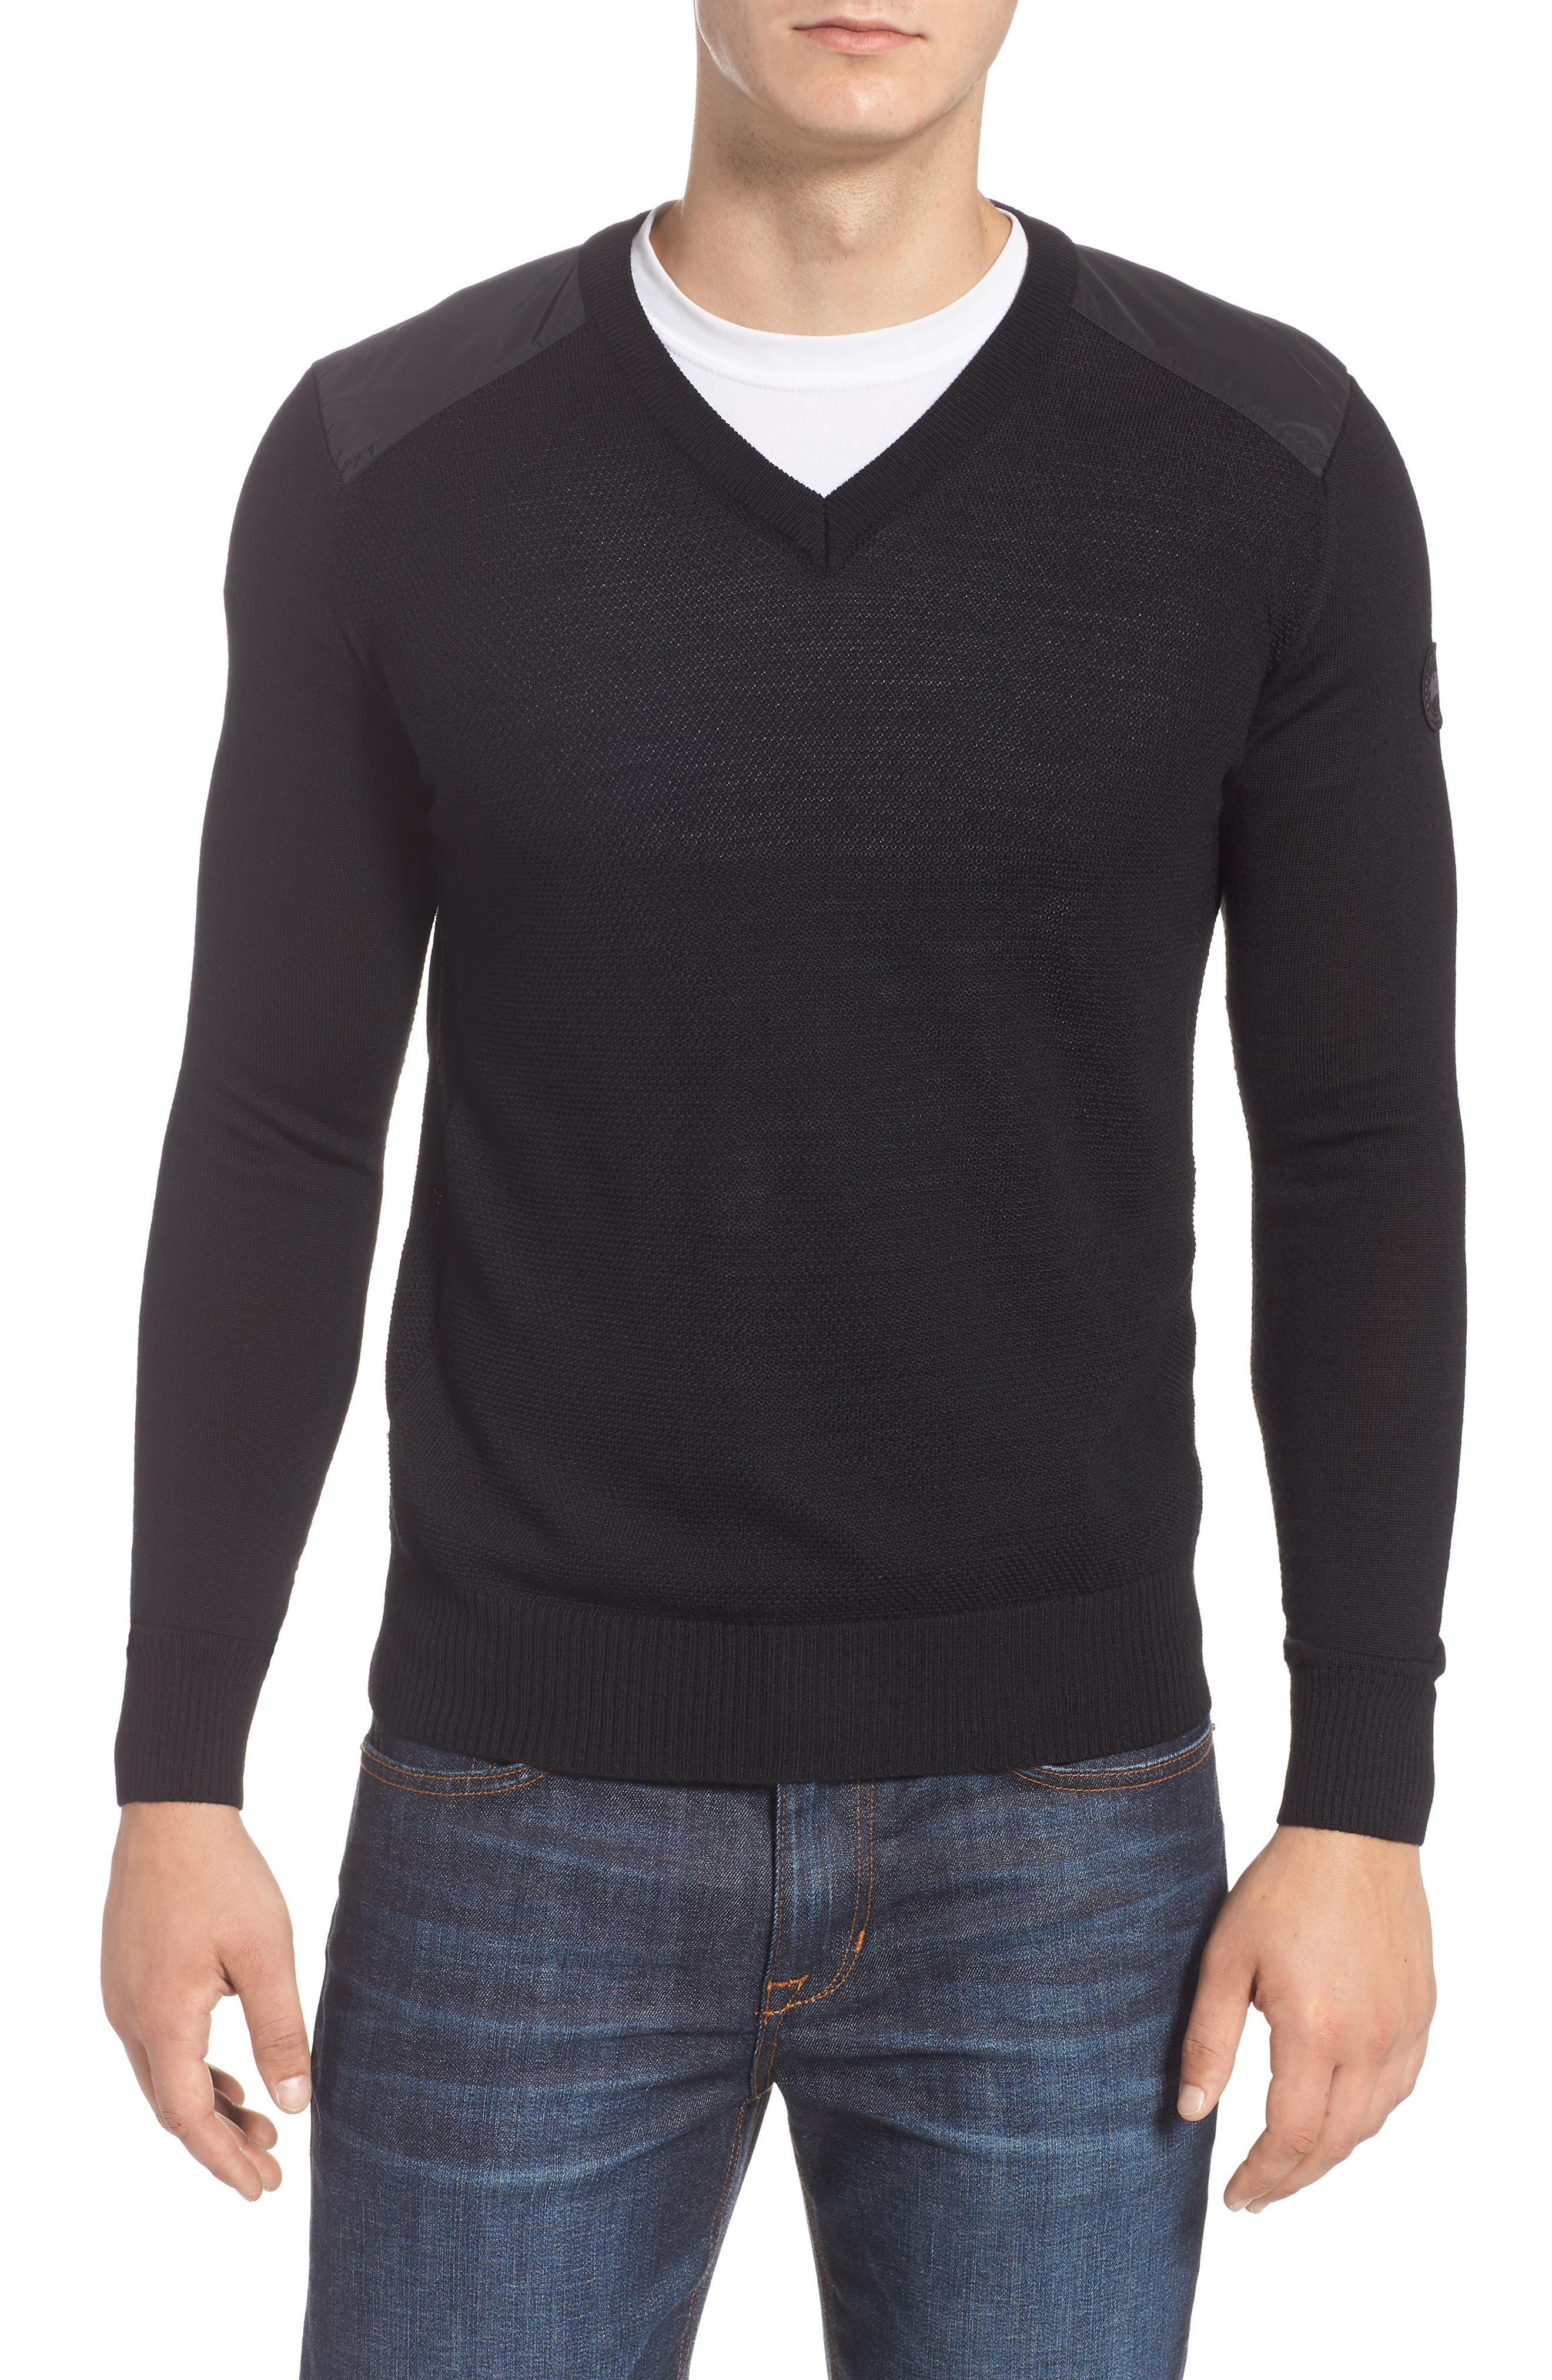 Mcleod V-Neck Regular Fit Merino Wool Sweater in Black